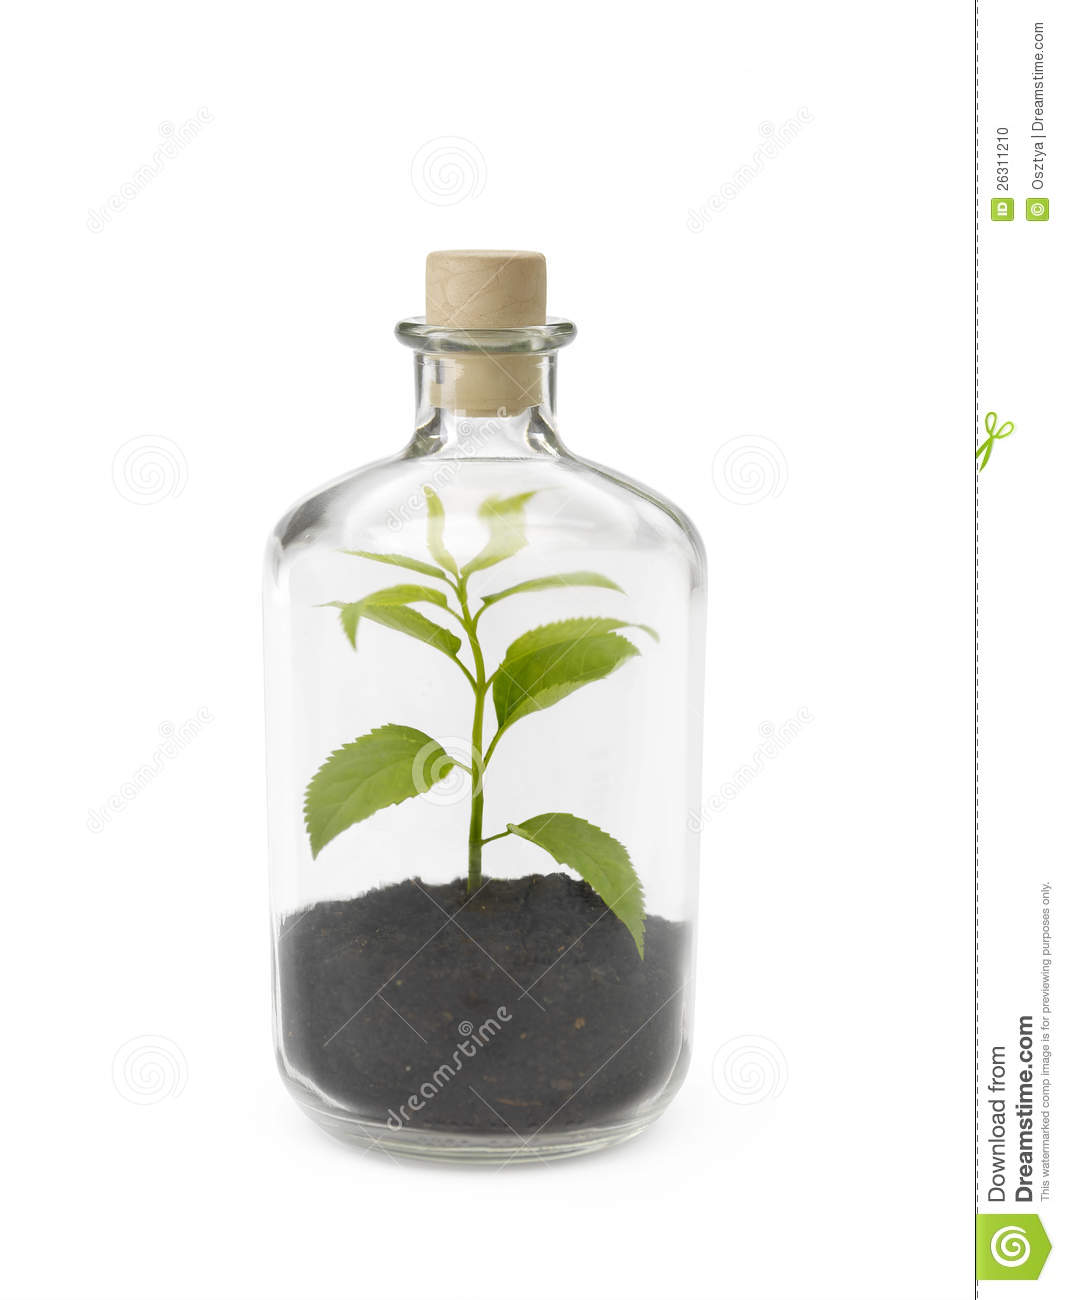 More similar stock images of ` Plant in a bottle `